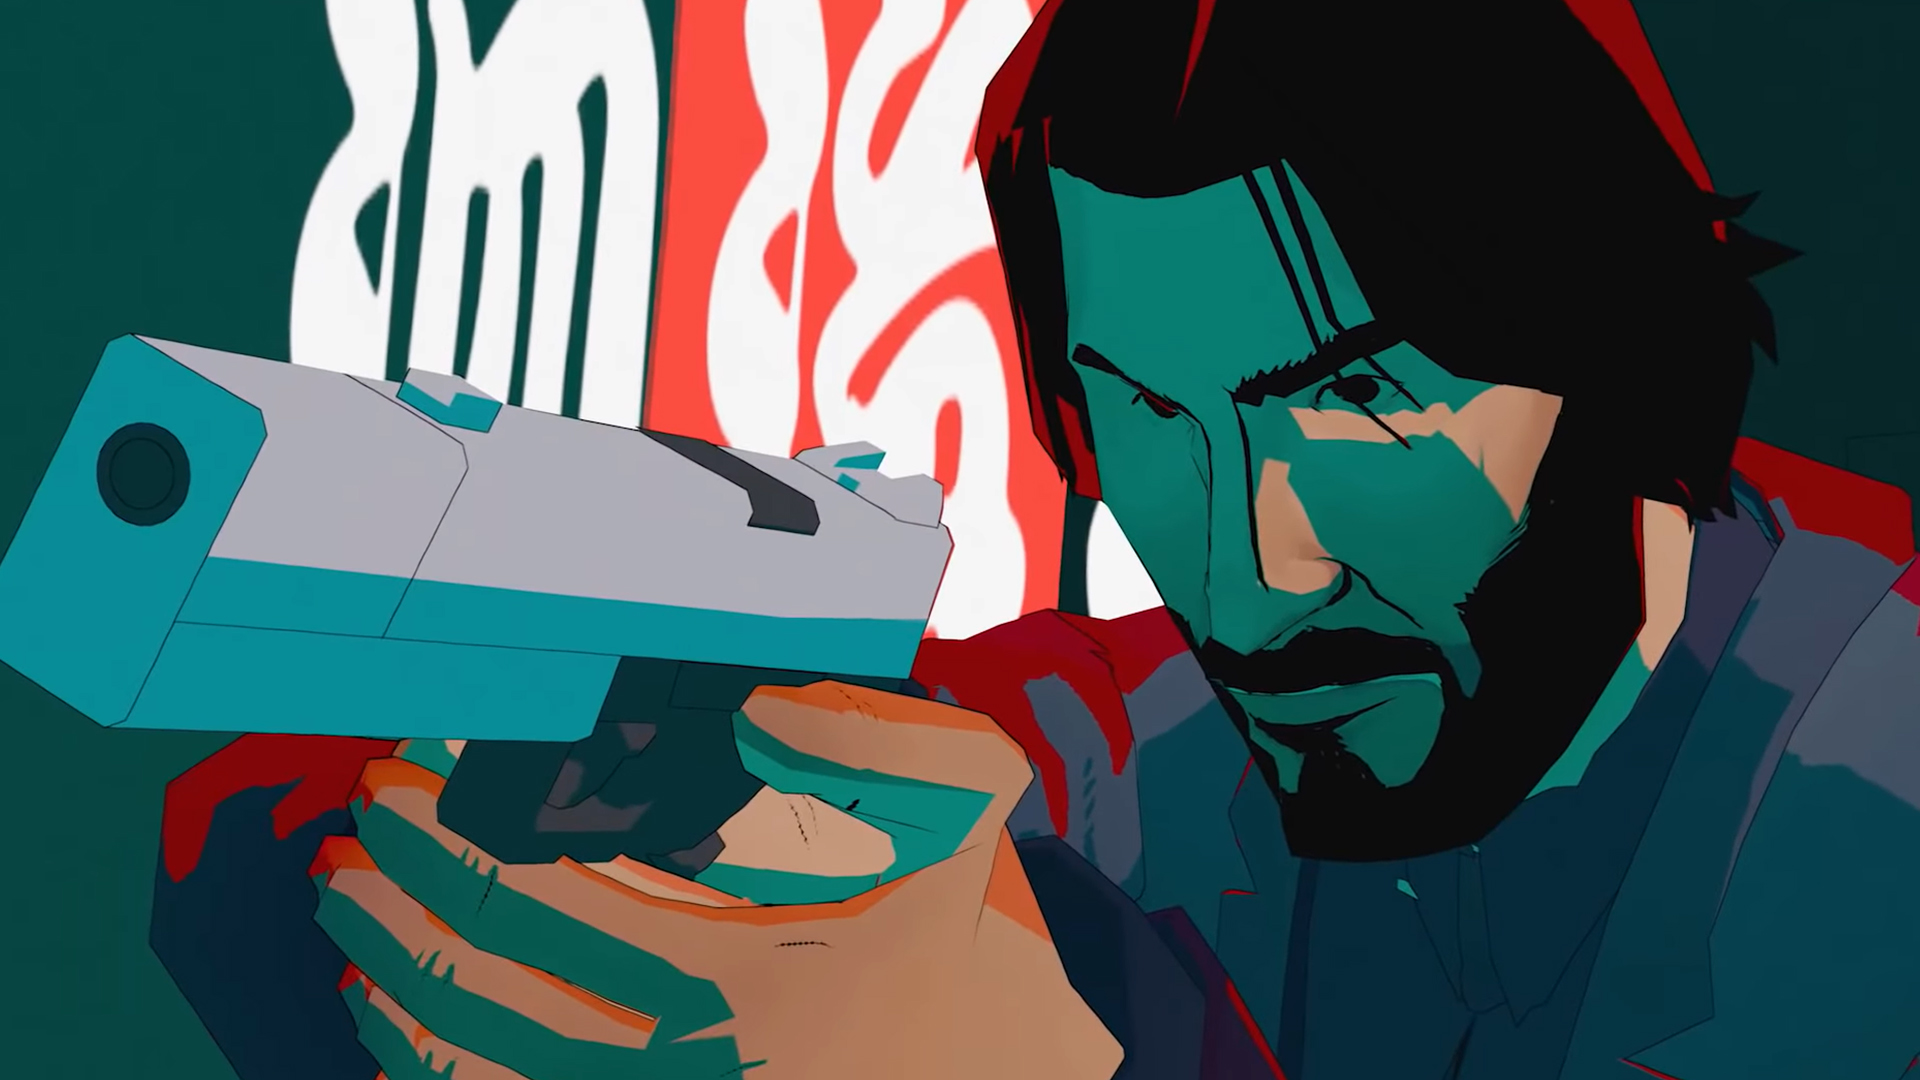 JOHN WICK HEX Puts You in the Director's Chair_8